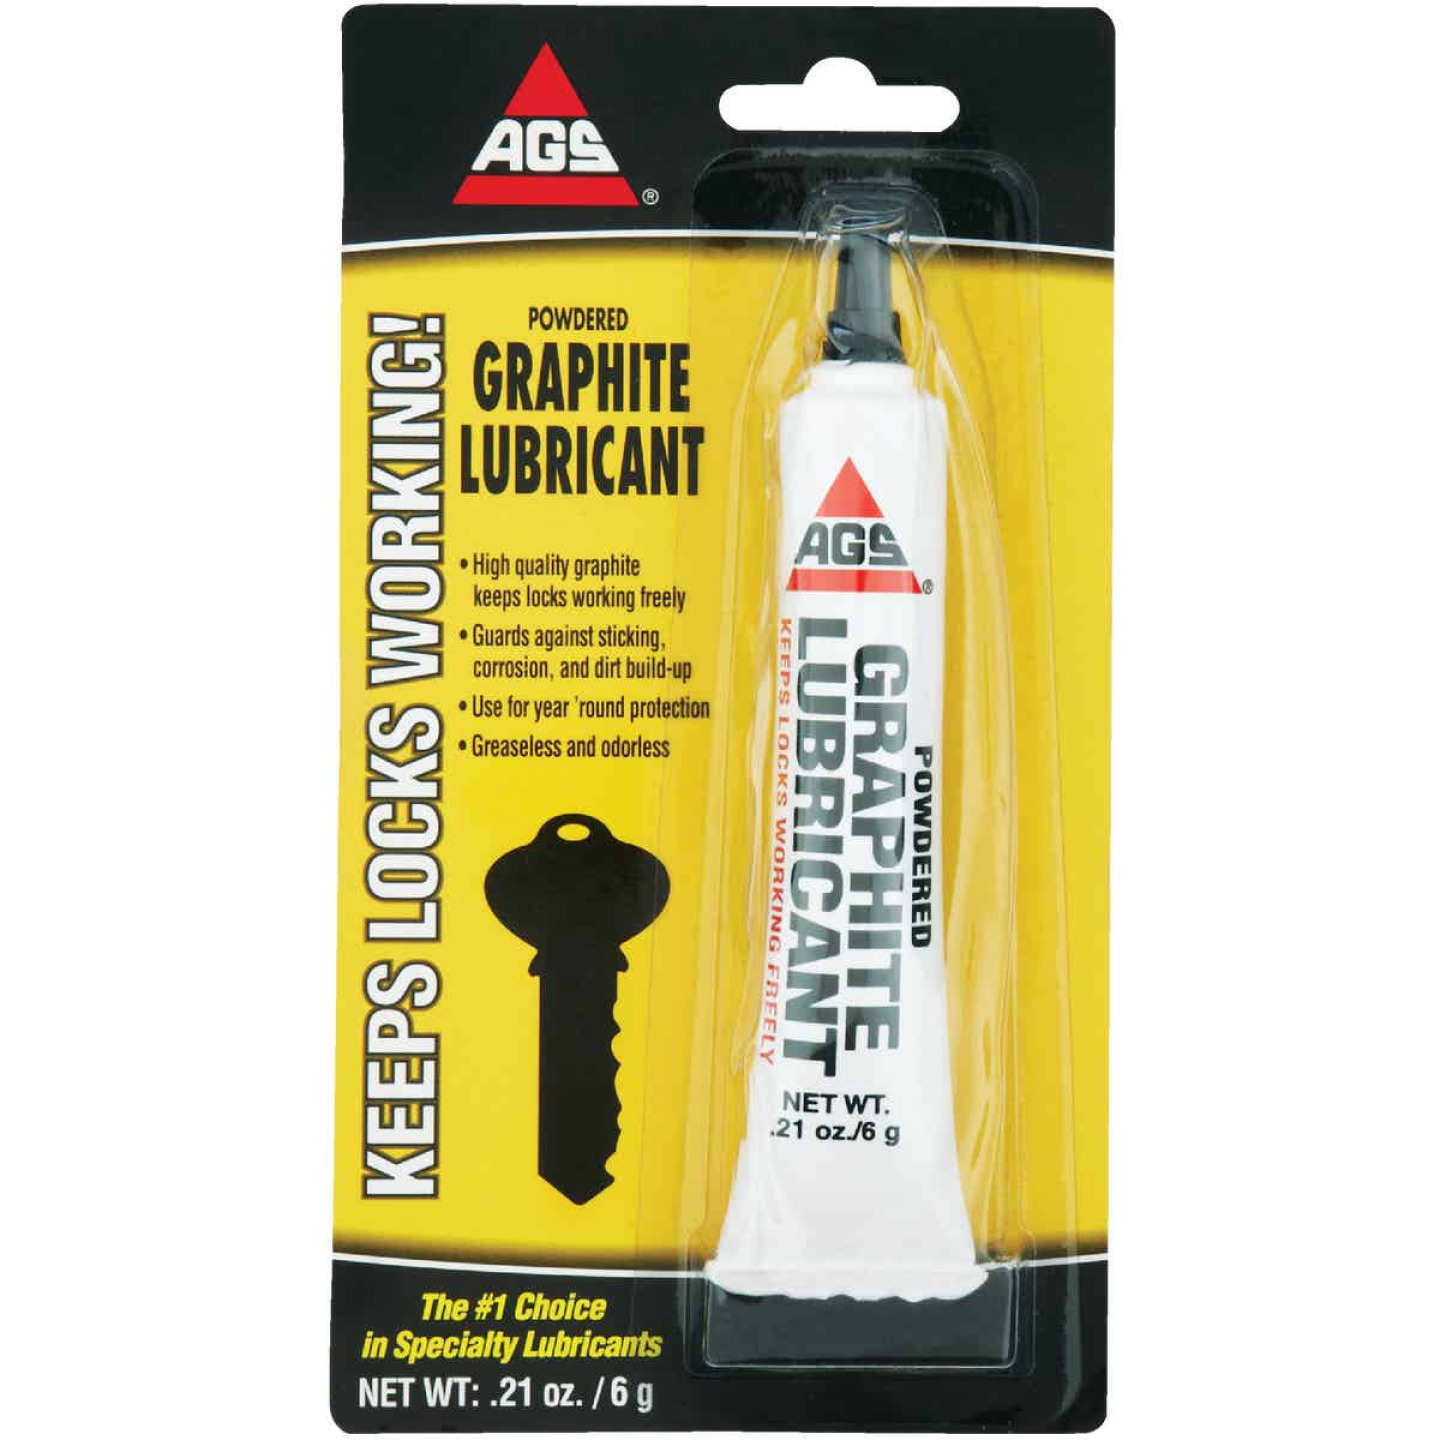 AGS 0.21 Oz. Tube Powdered Graphite Dry Lubricant Image 1